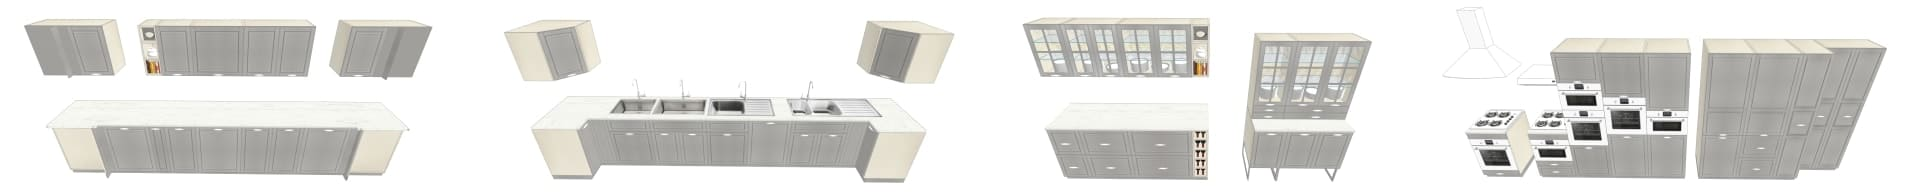 COLLECTION 3D IKEA BODBYN GRIS